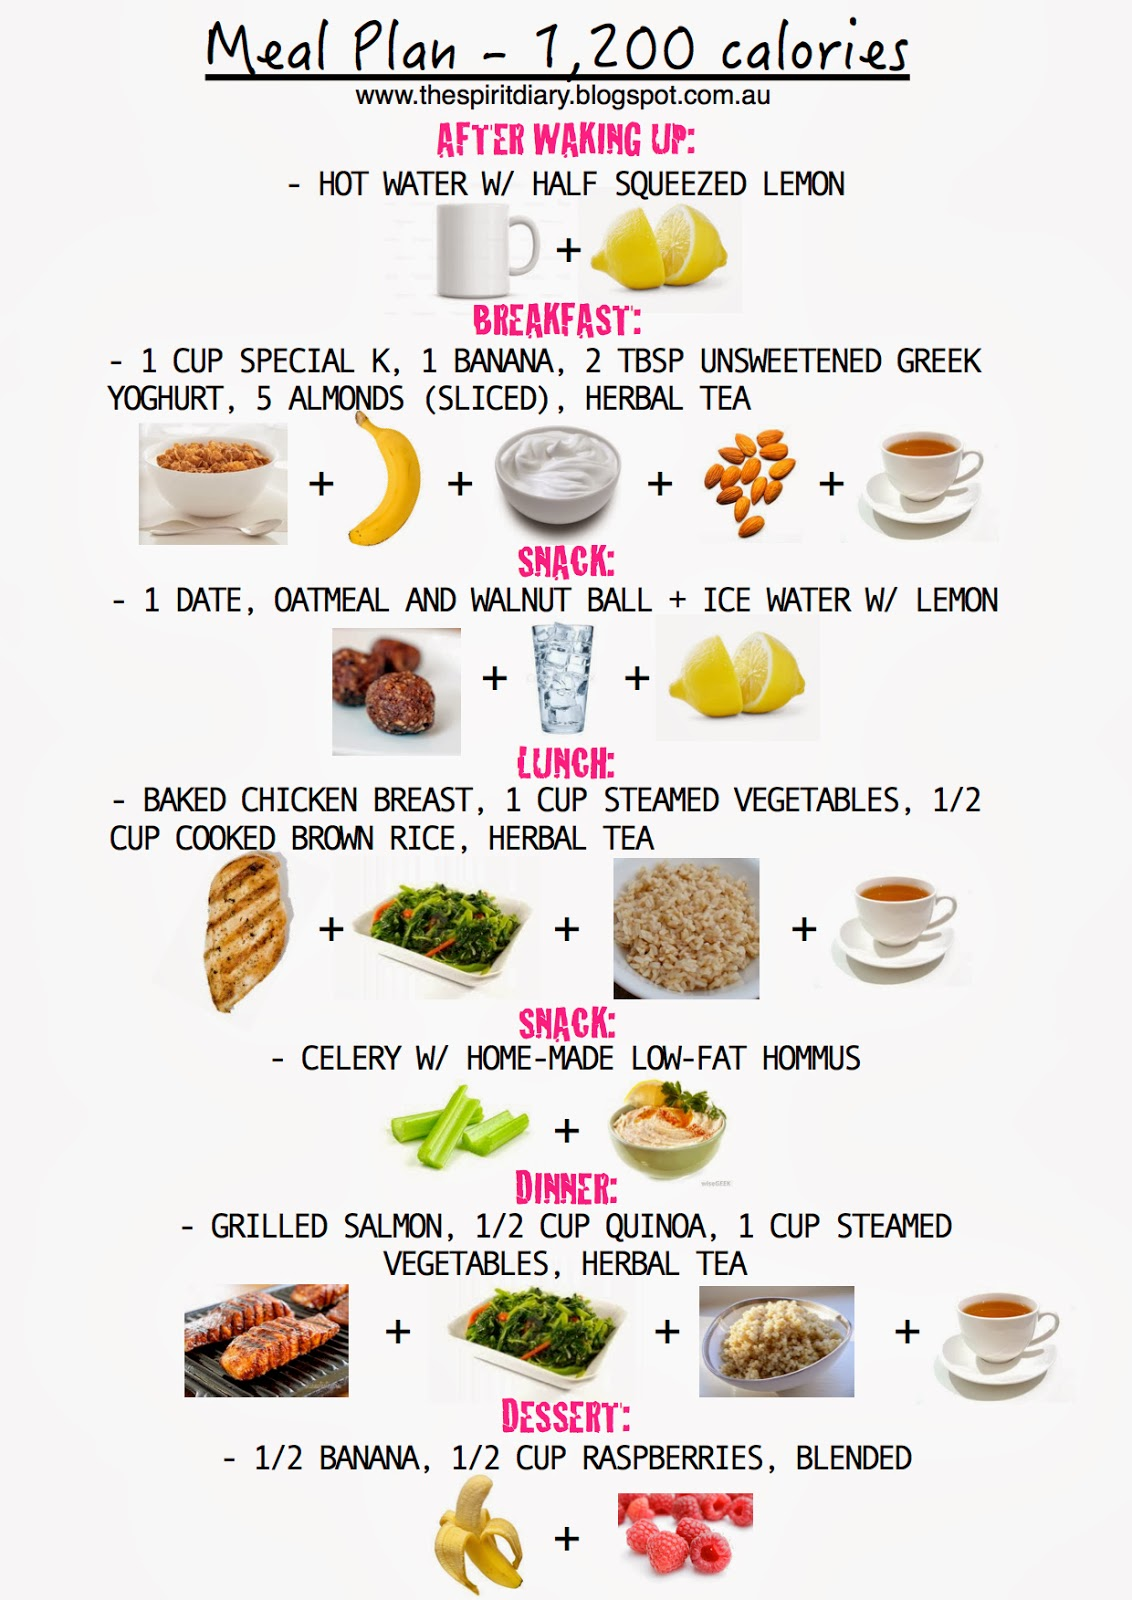 35 Fastest Ways to Lose Weight without Exercise and Pills